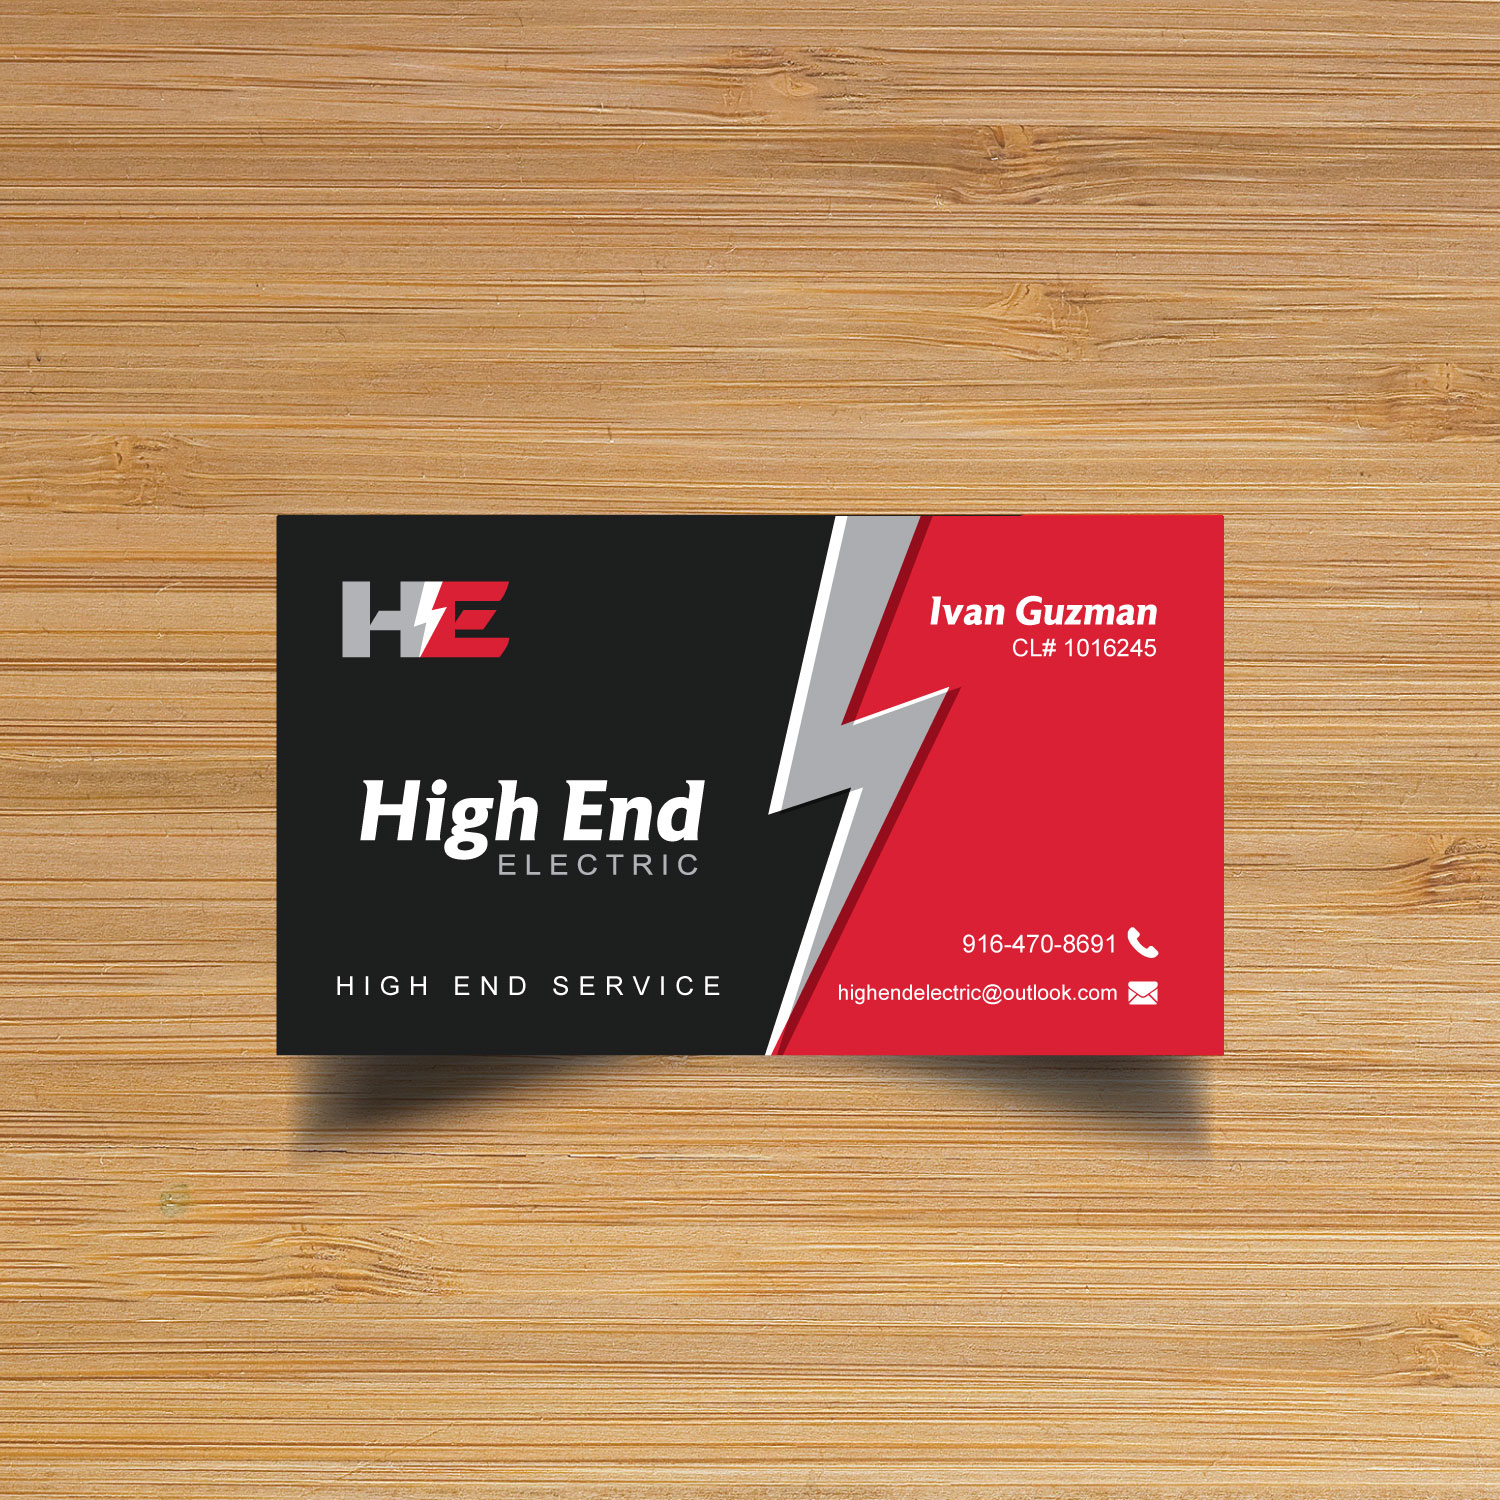 Professional Bold Business Card Design for High End Electric by